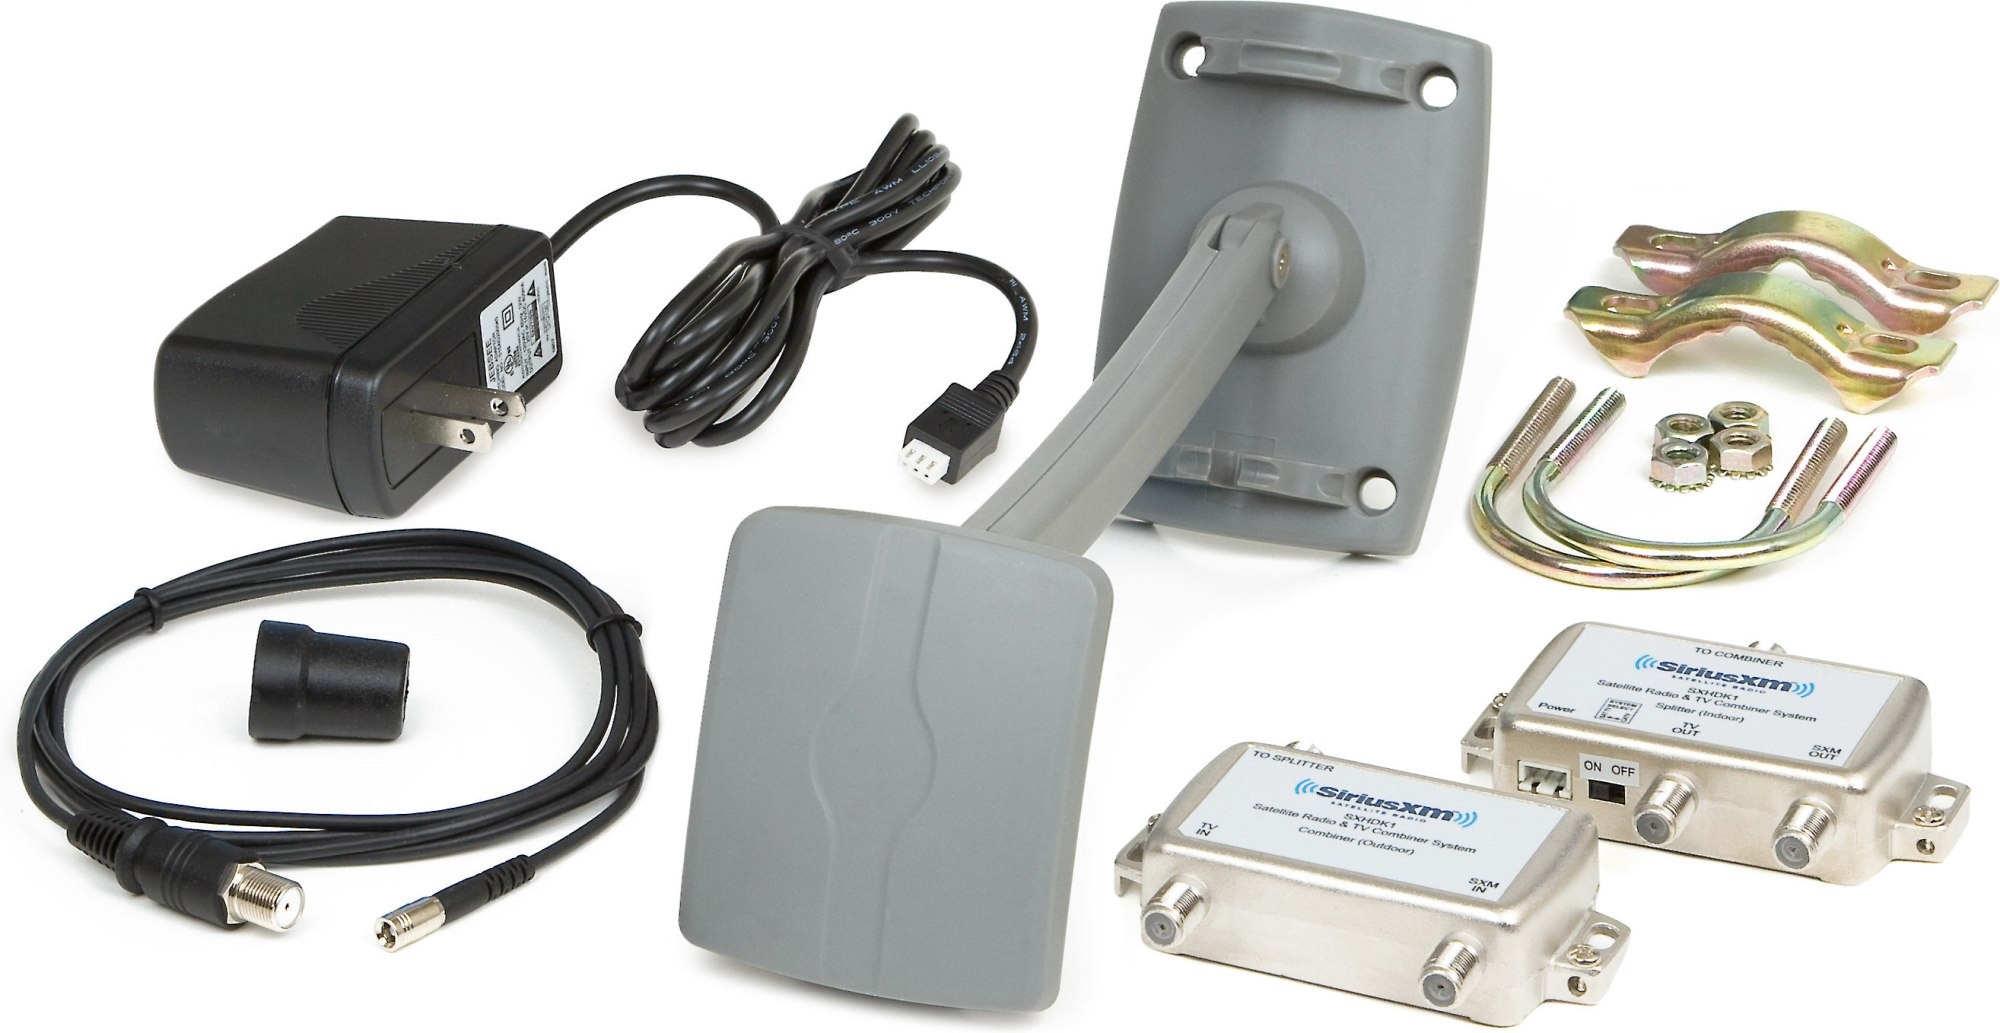 hight resolution of siriusxm home antenna and signal distribution kit uses your existing satellite or cable tv wiring at crutchfield